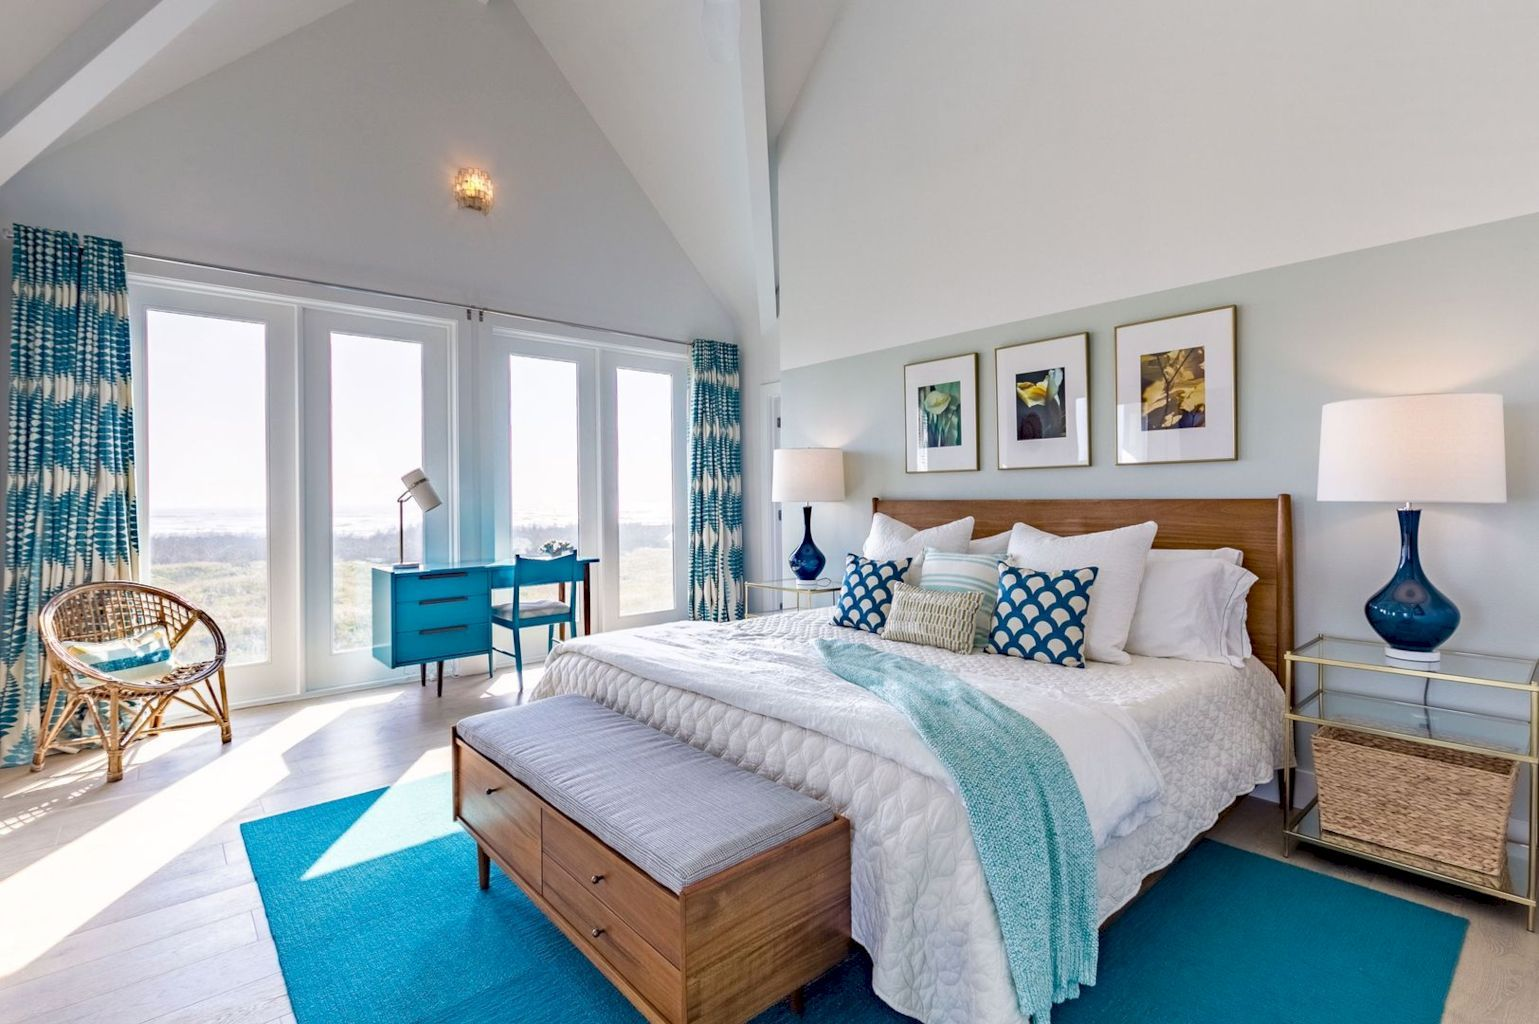 Awesome Above The Bed Beach Themed Decor Ideas Beach Themed Bedroom Beachy Bedroom Beach Bedroom